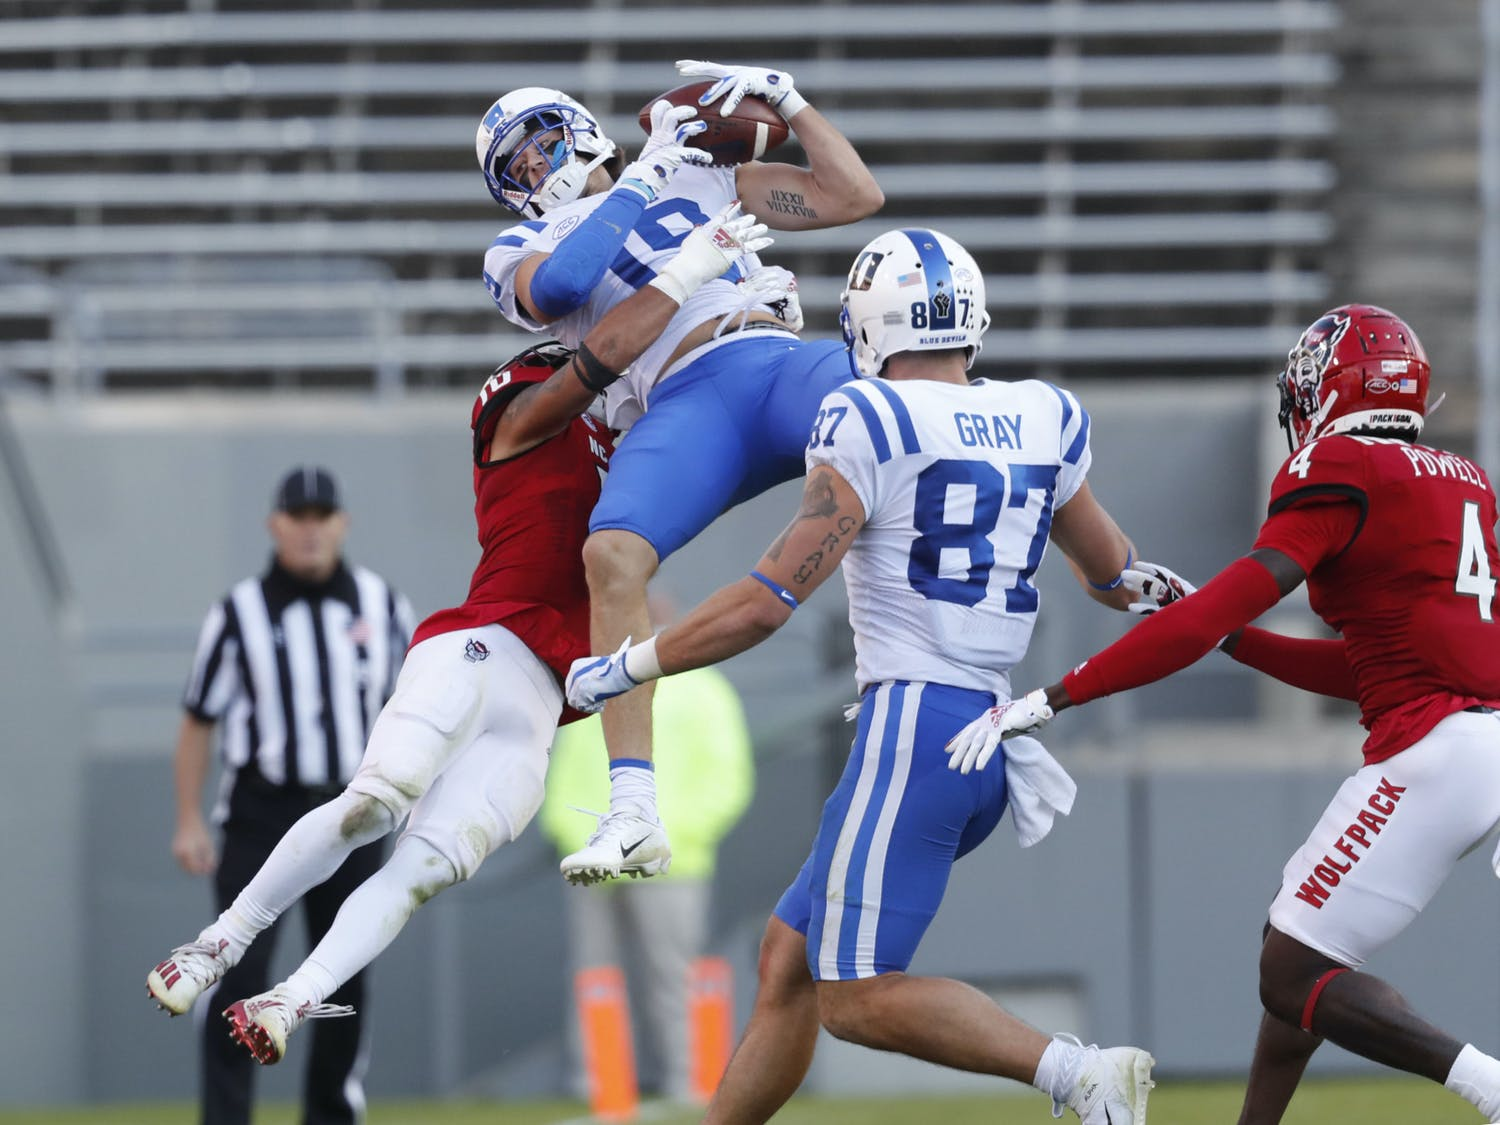 Senior Jake Bobo looks to bring leadership and playmaking to the Blue Devils' passing game.